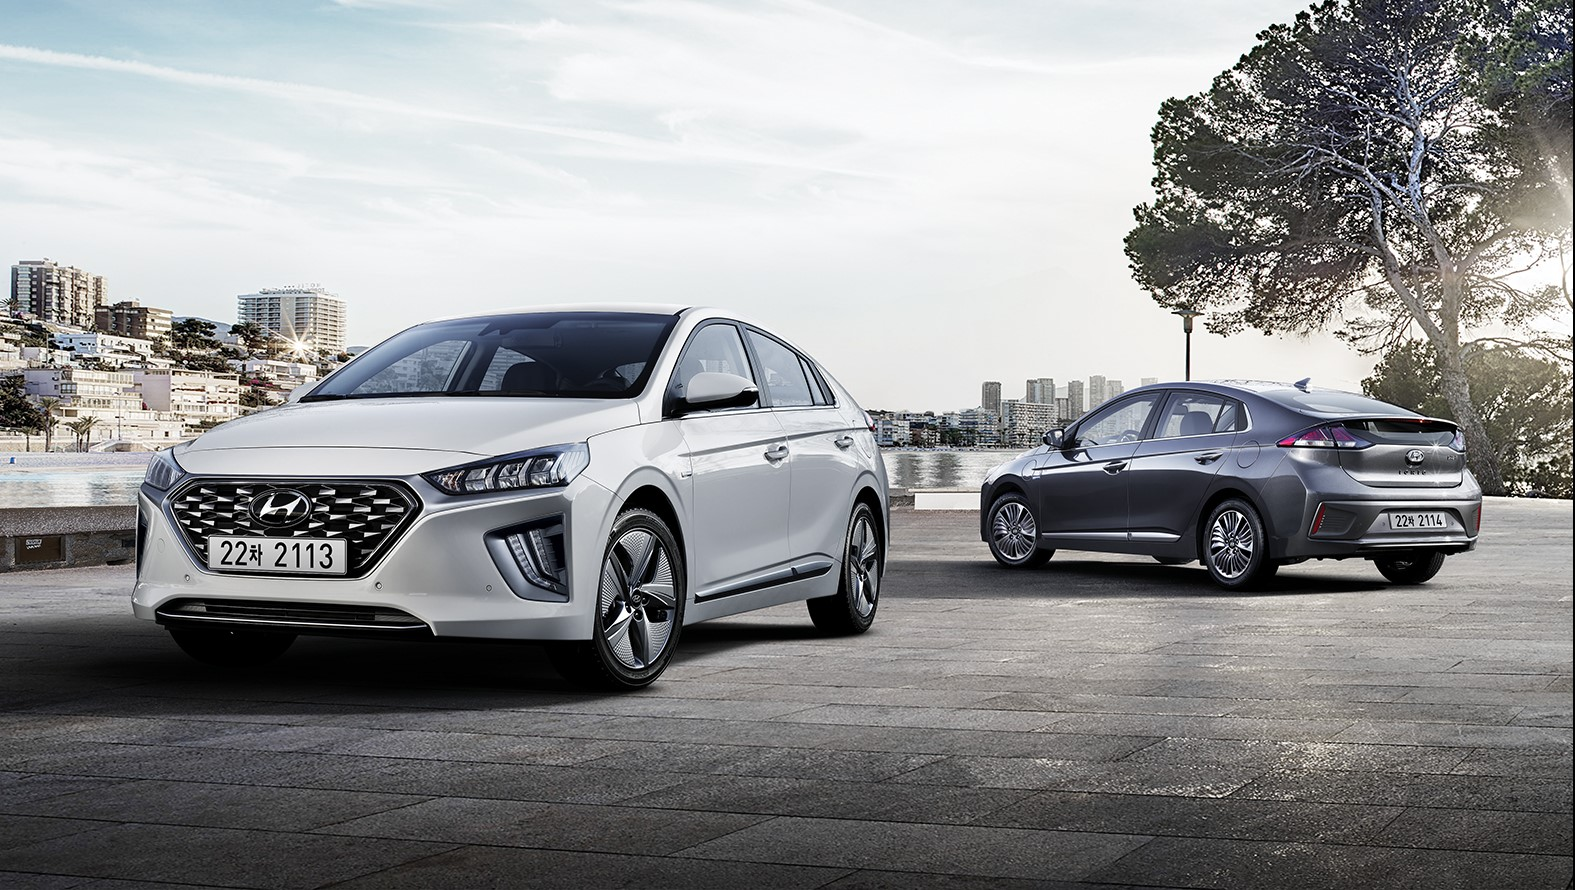 While many other manufacturers announce their first-ever eco-friendly models, Hyundai Motor is already launching a heavily revised model of its ...